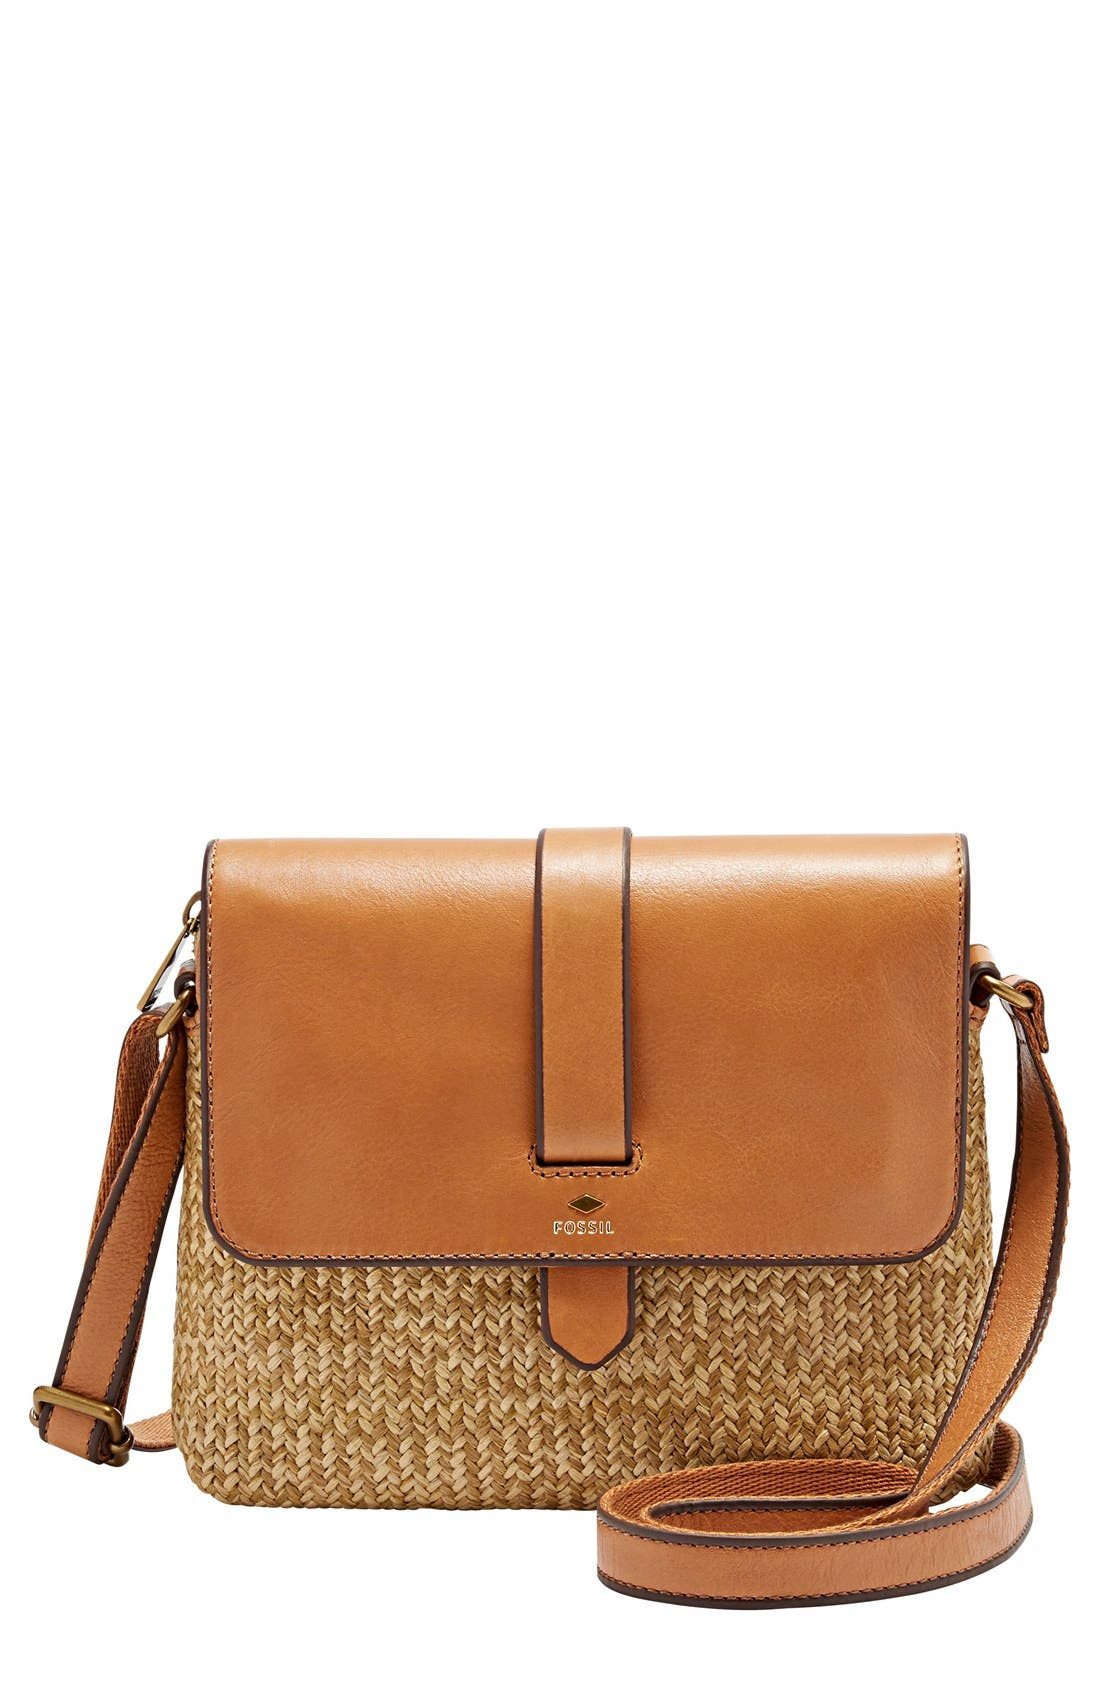 fossil small kinley leather straw crossbody bag